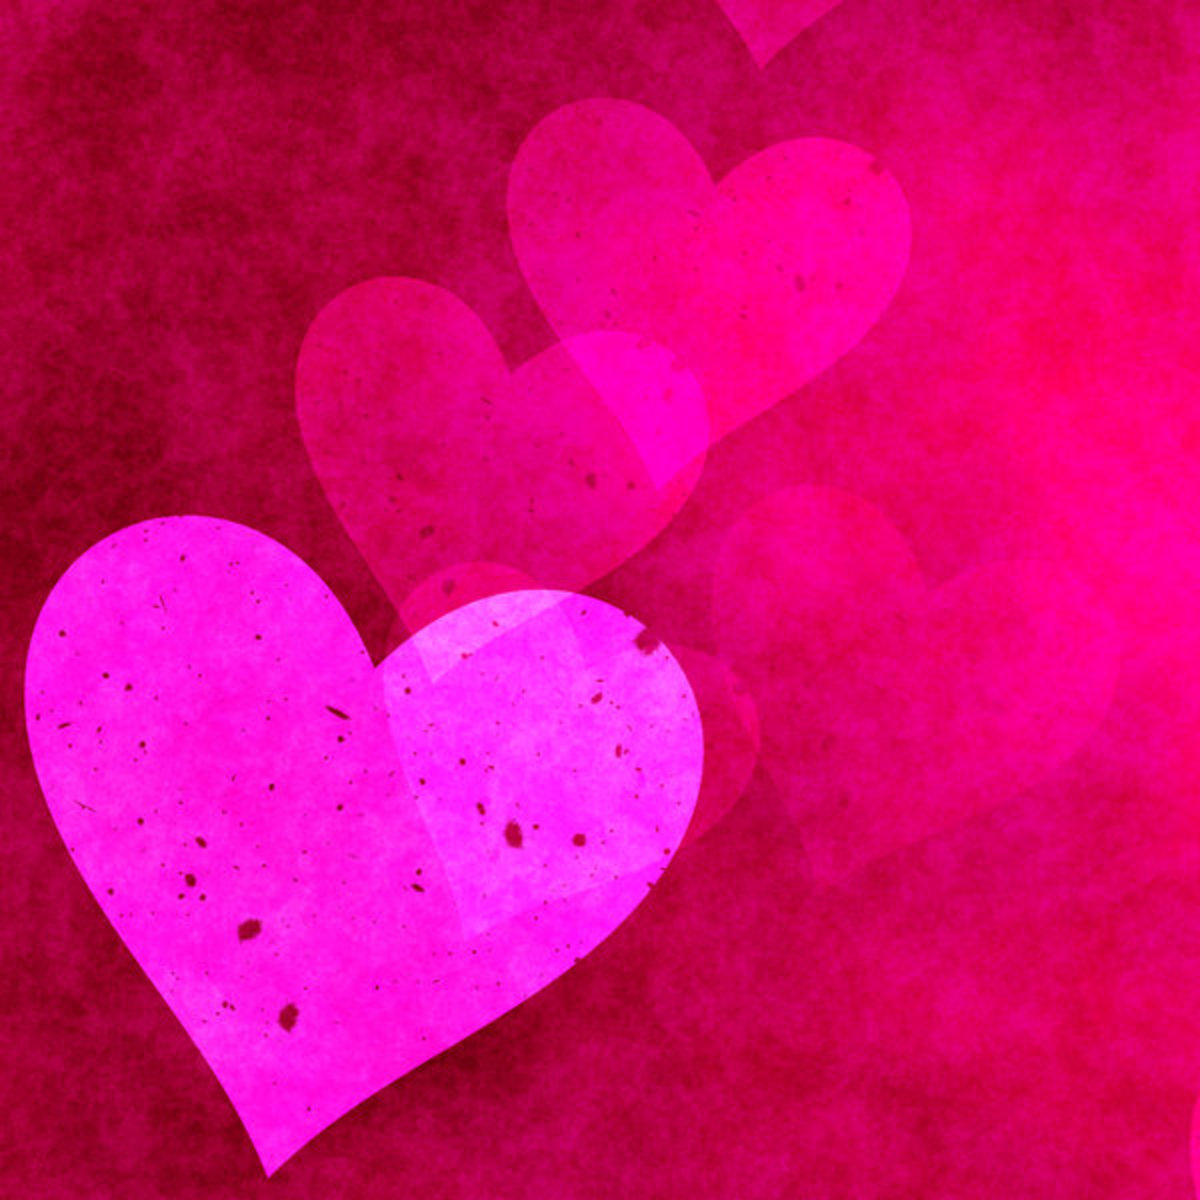 Pink Heart Pictures